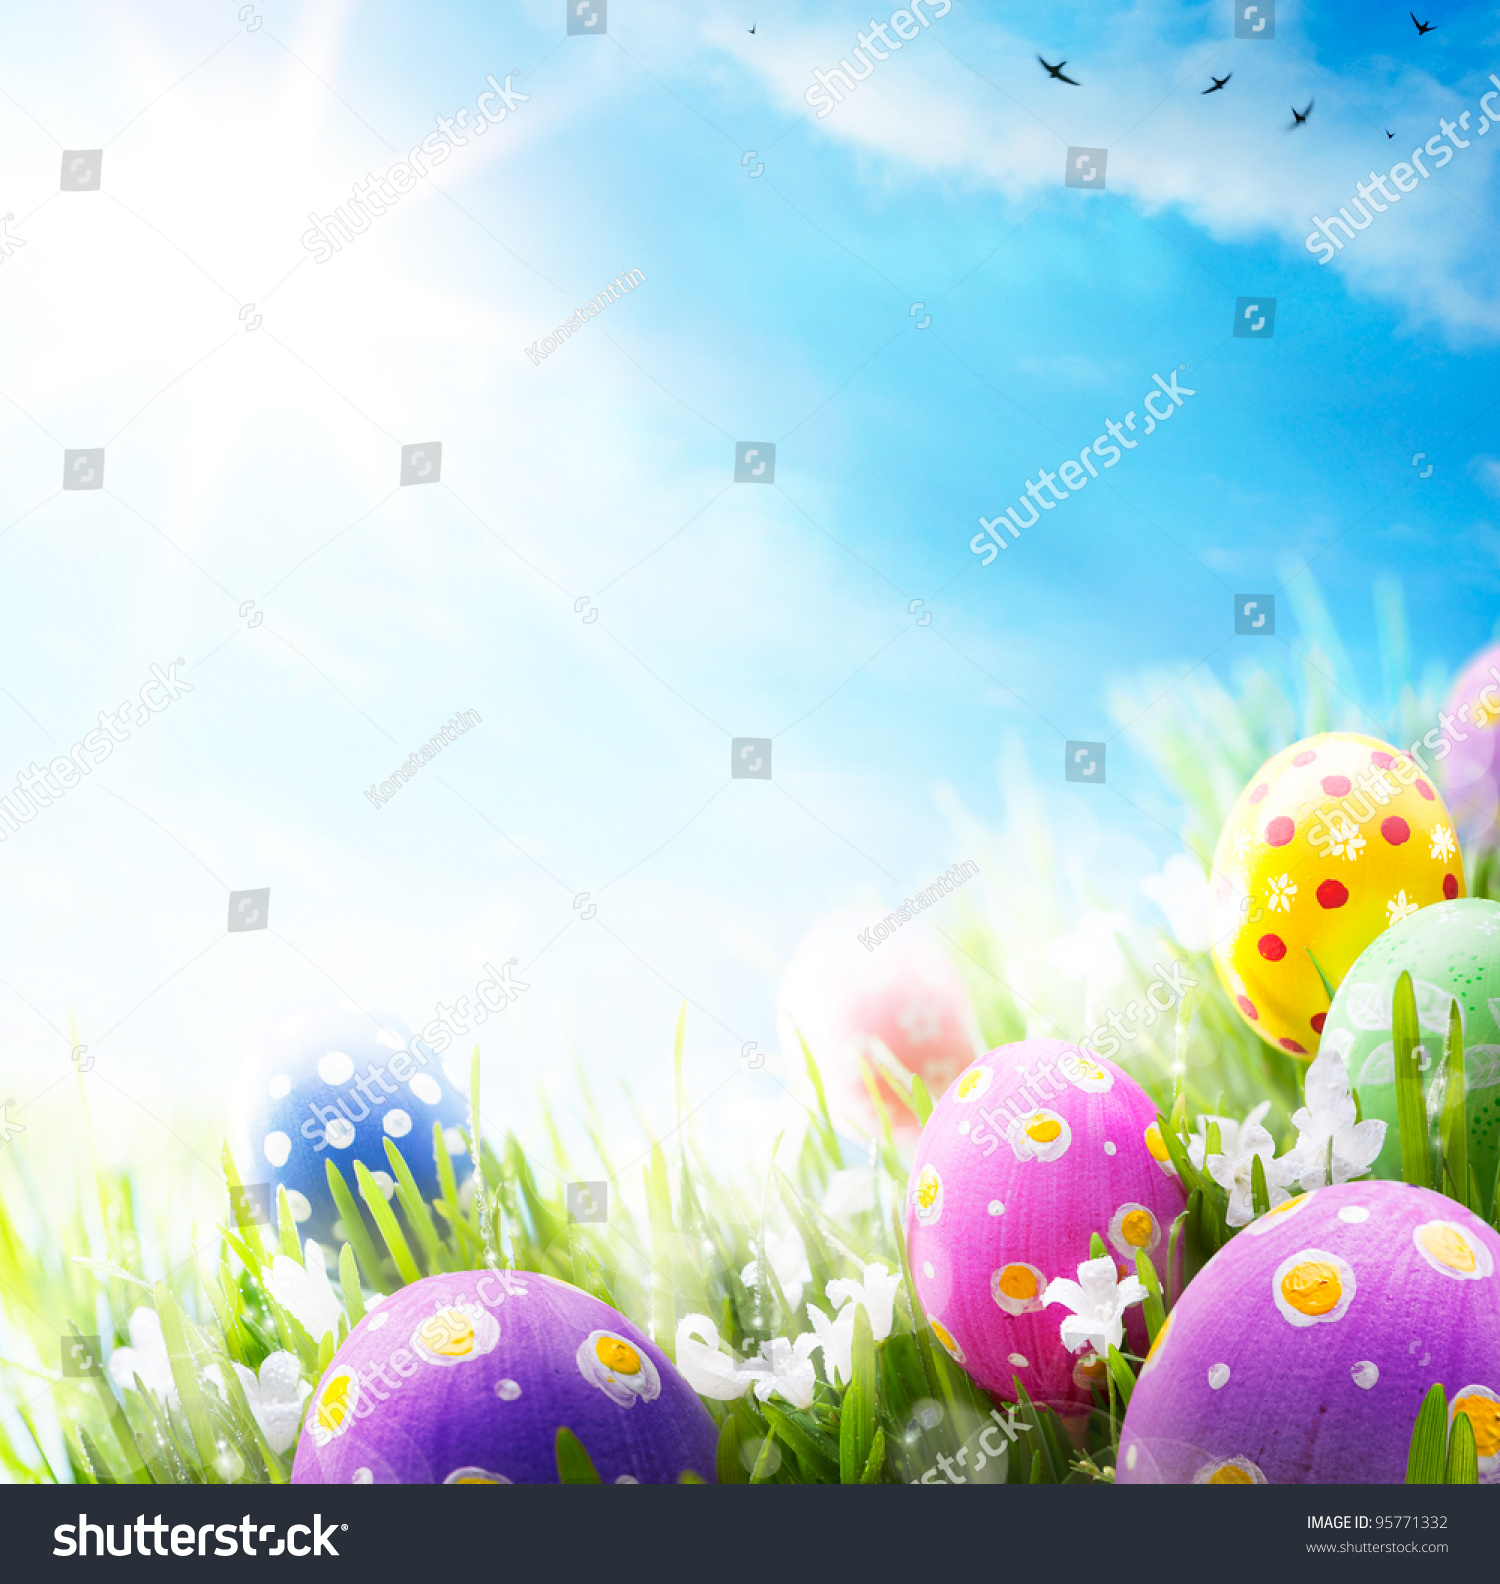 Colorful Easter Eggs Decorated Flowers Grass Stock Photo ...